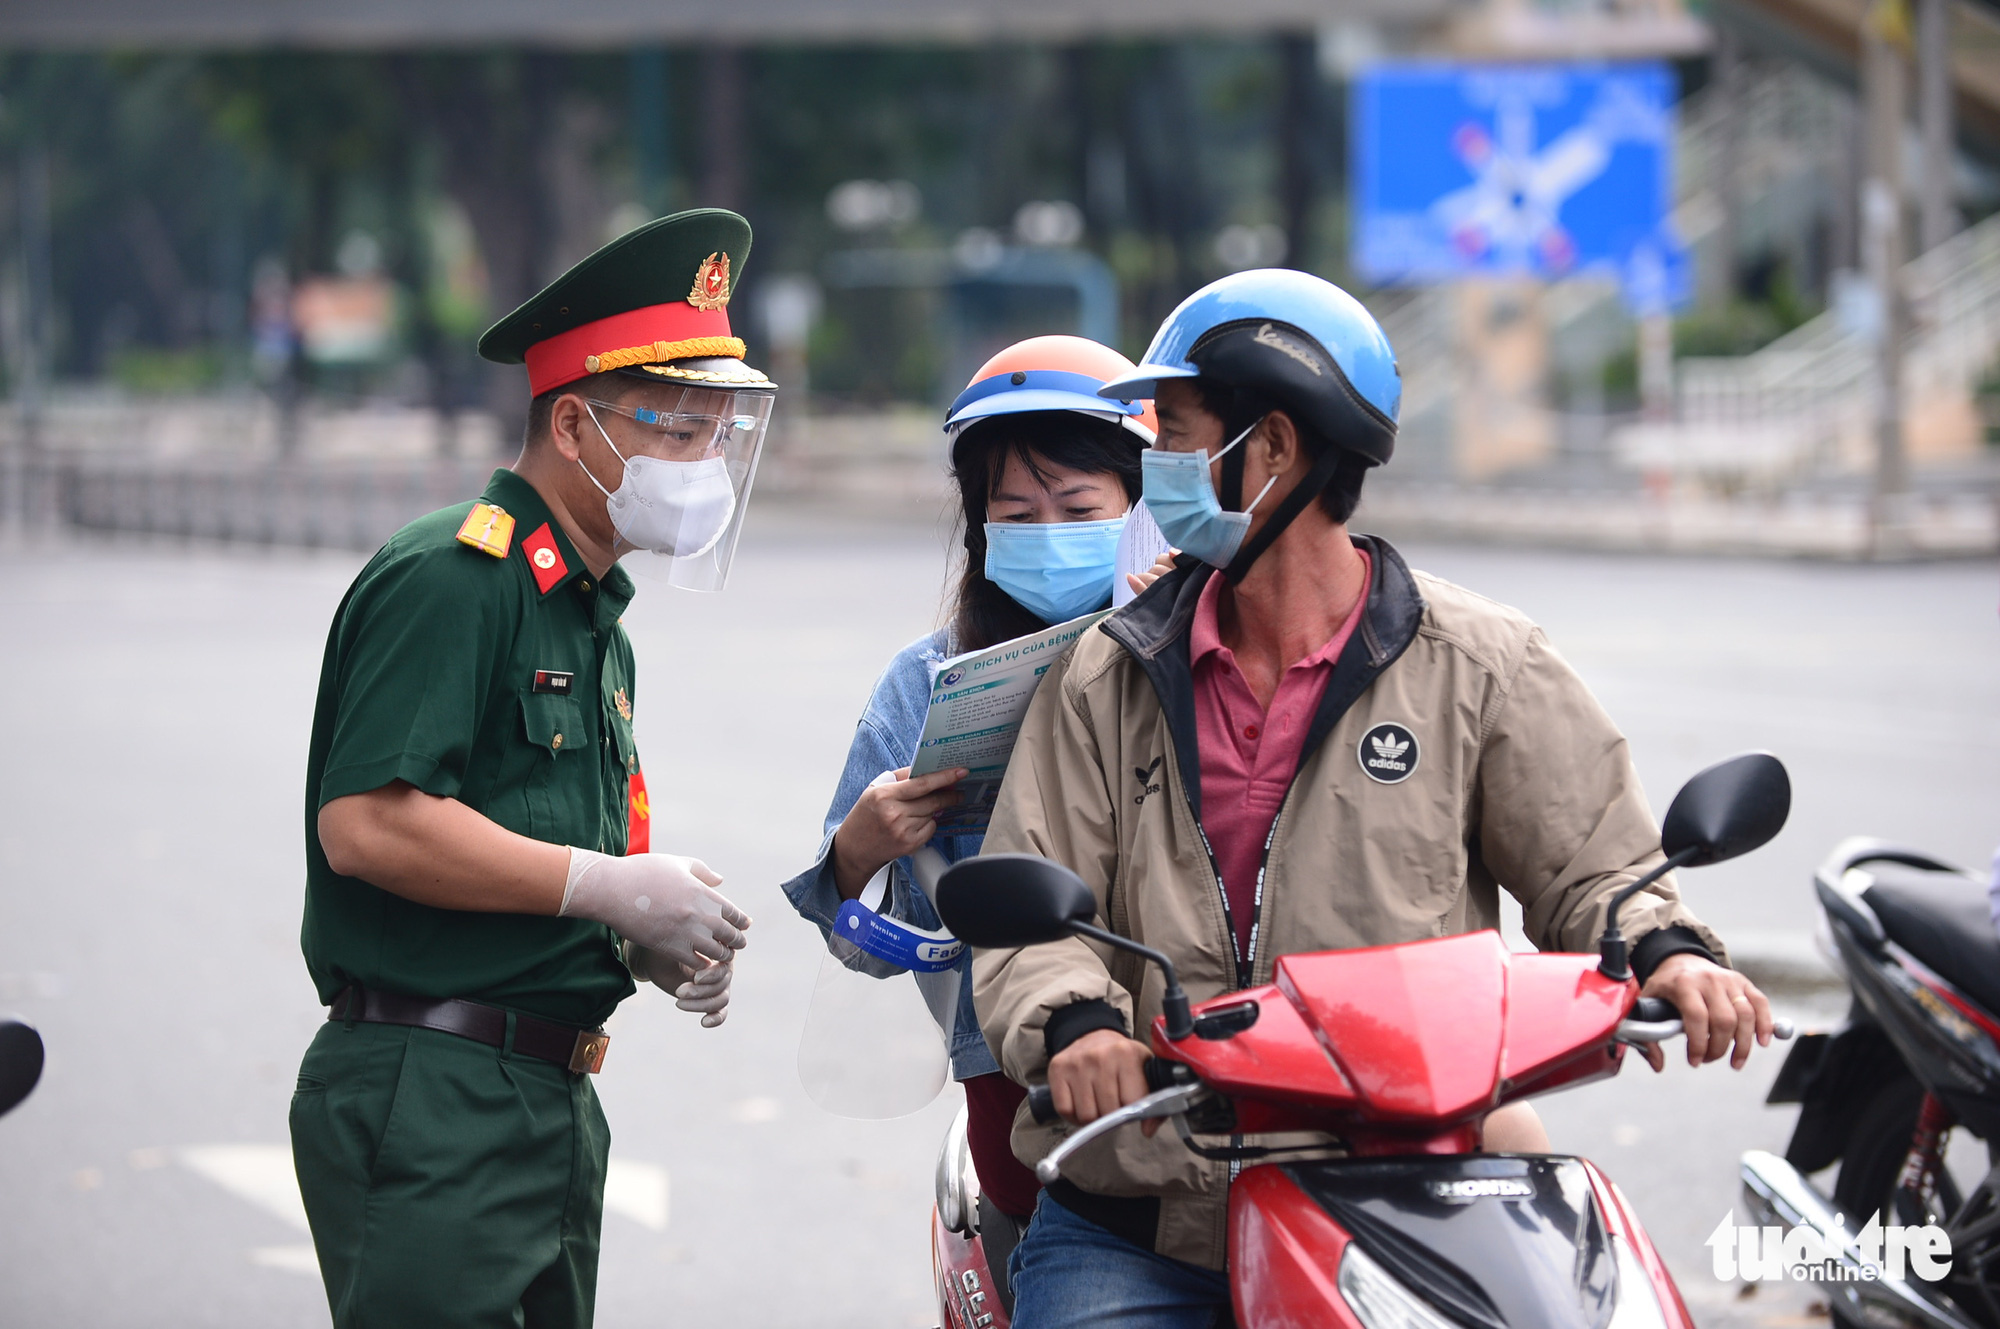 Who can go outside during the shelter-in-place order in Ho Chi Minh City?